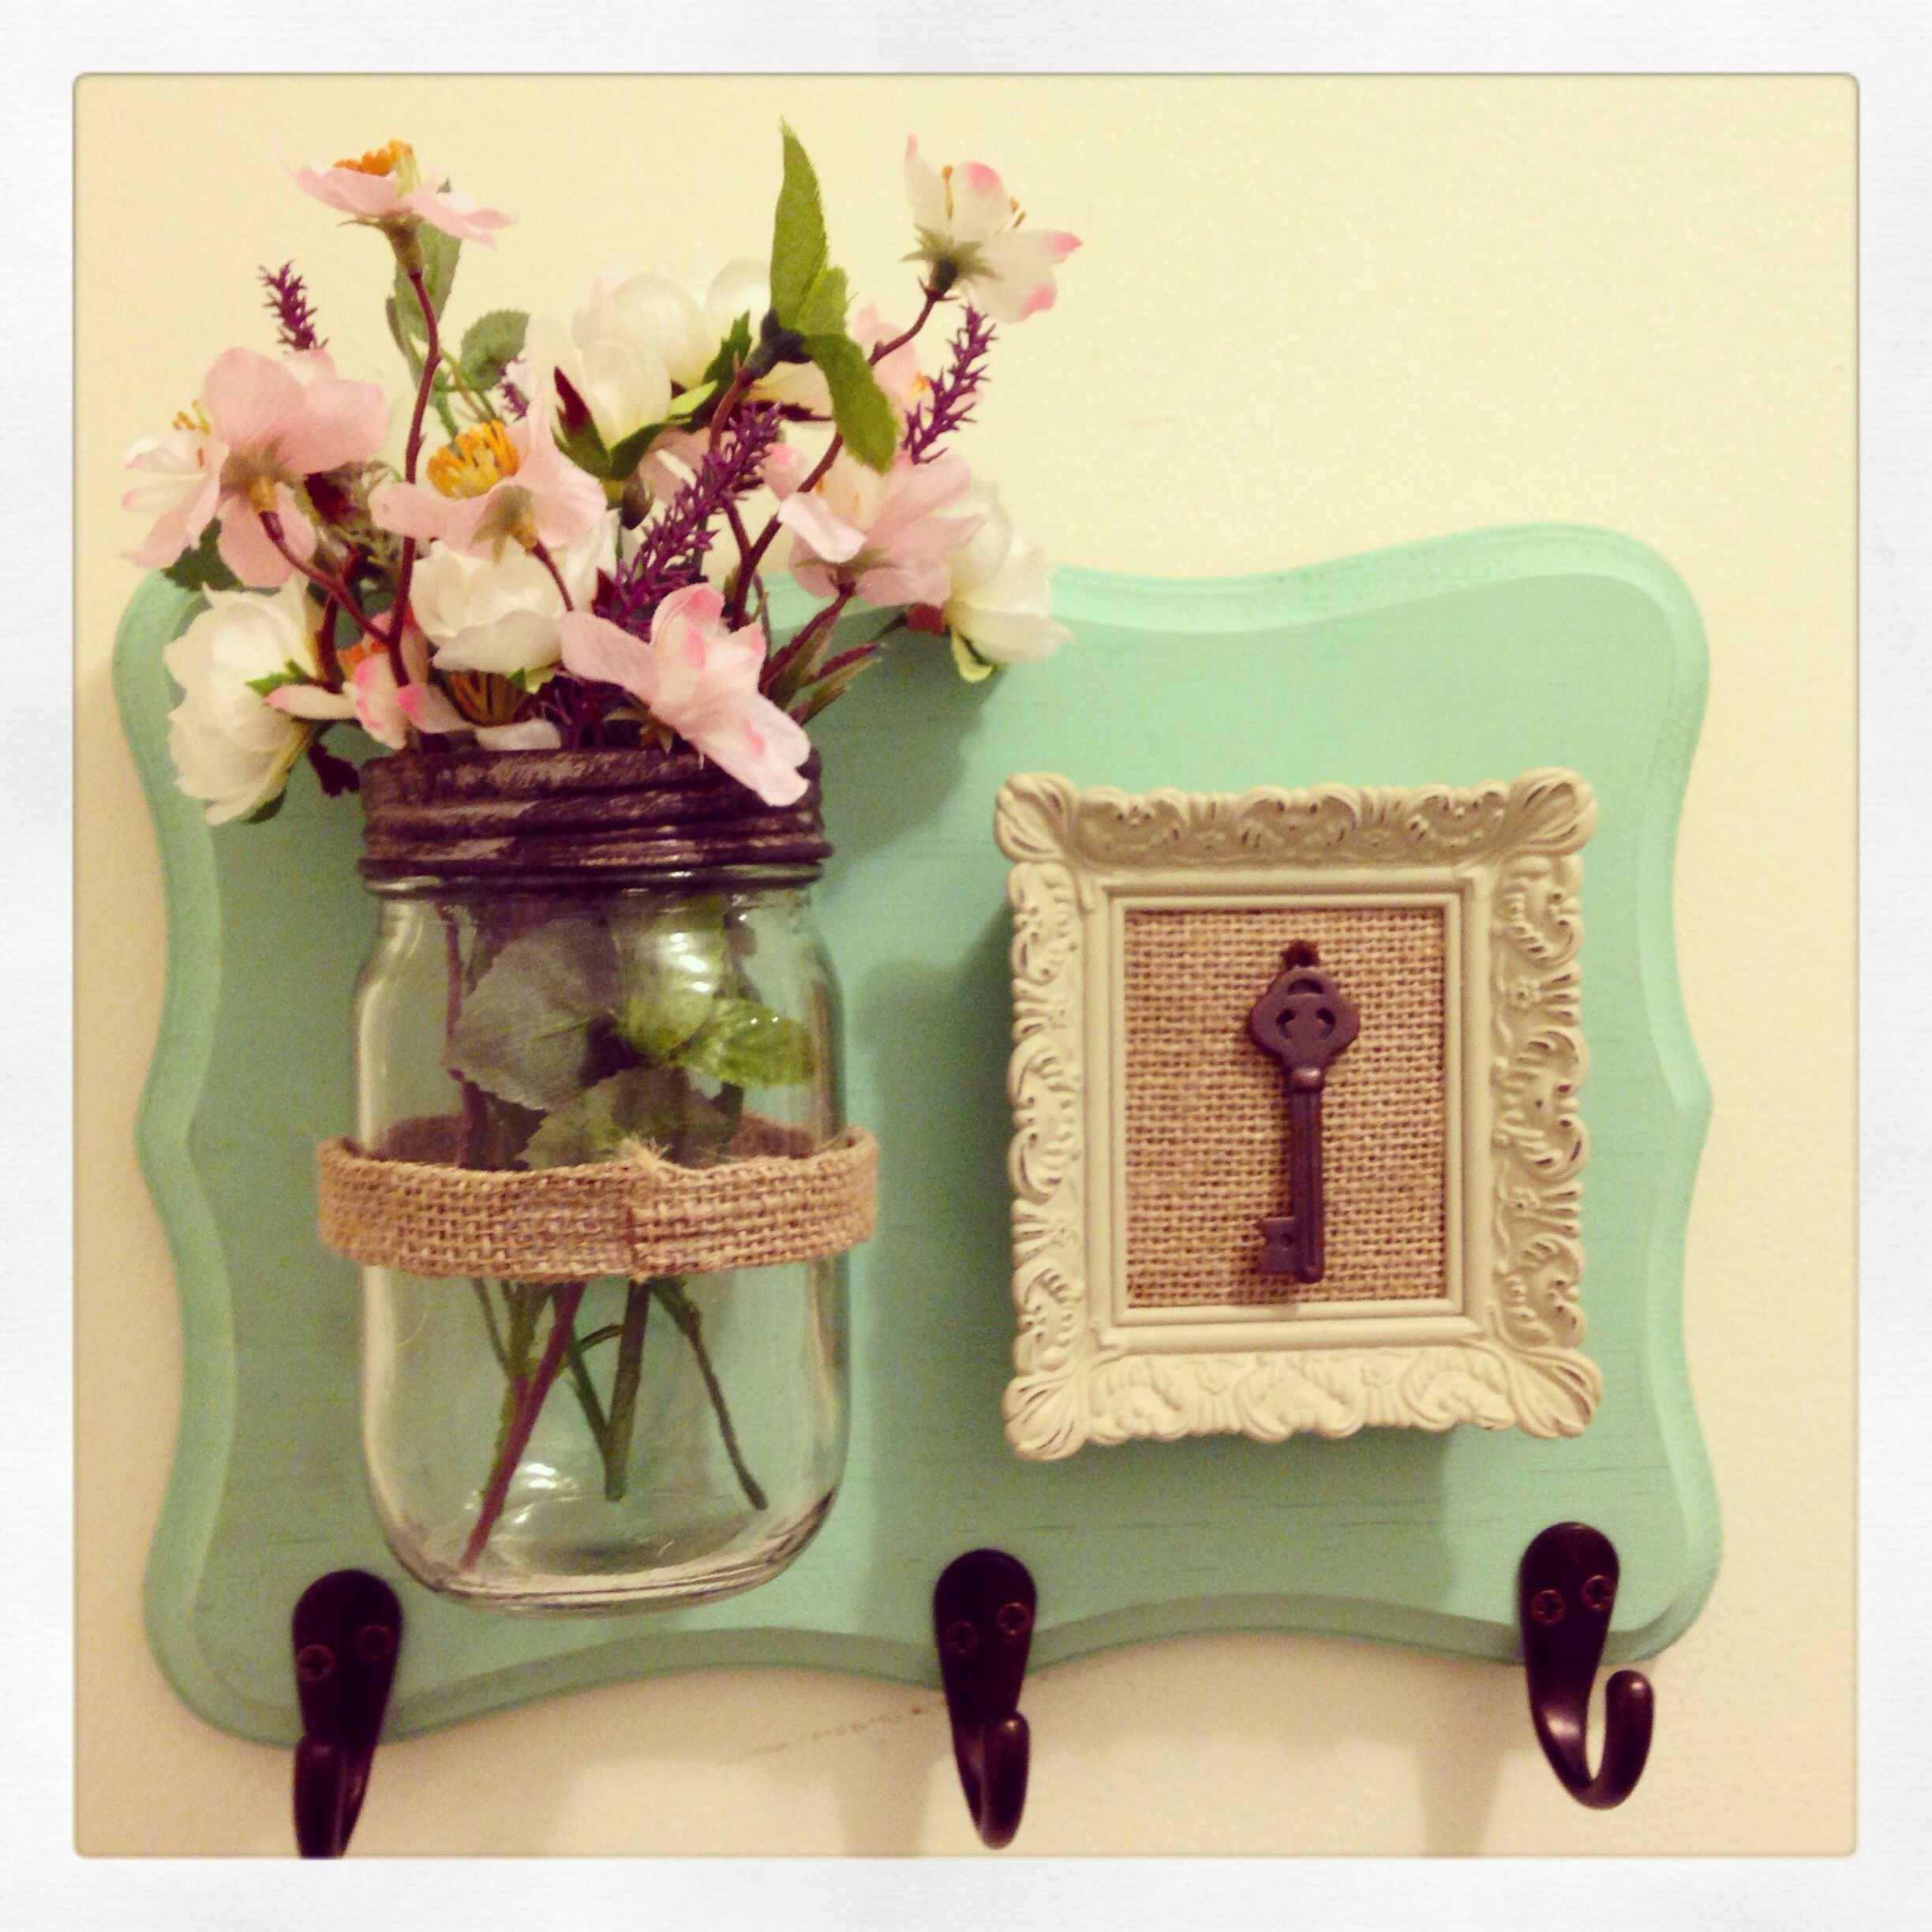 DIY key holder with mason jar flowers and key picture frame with ...